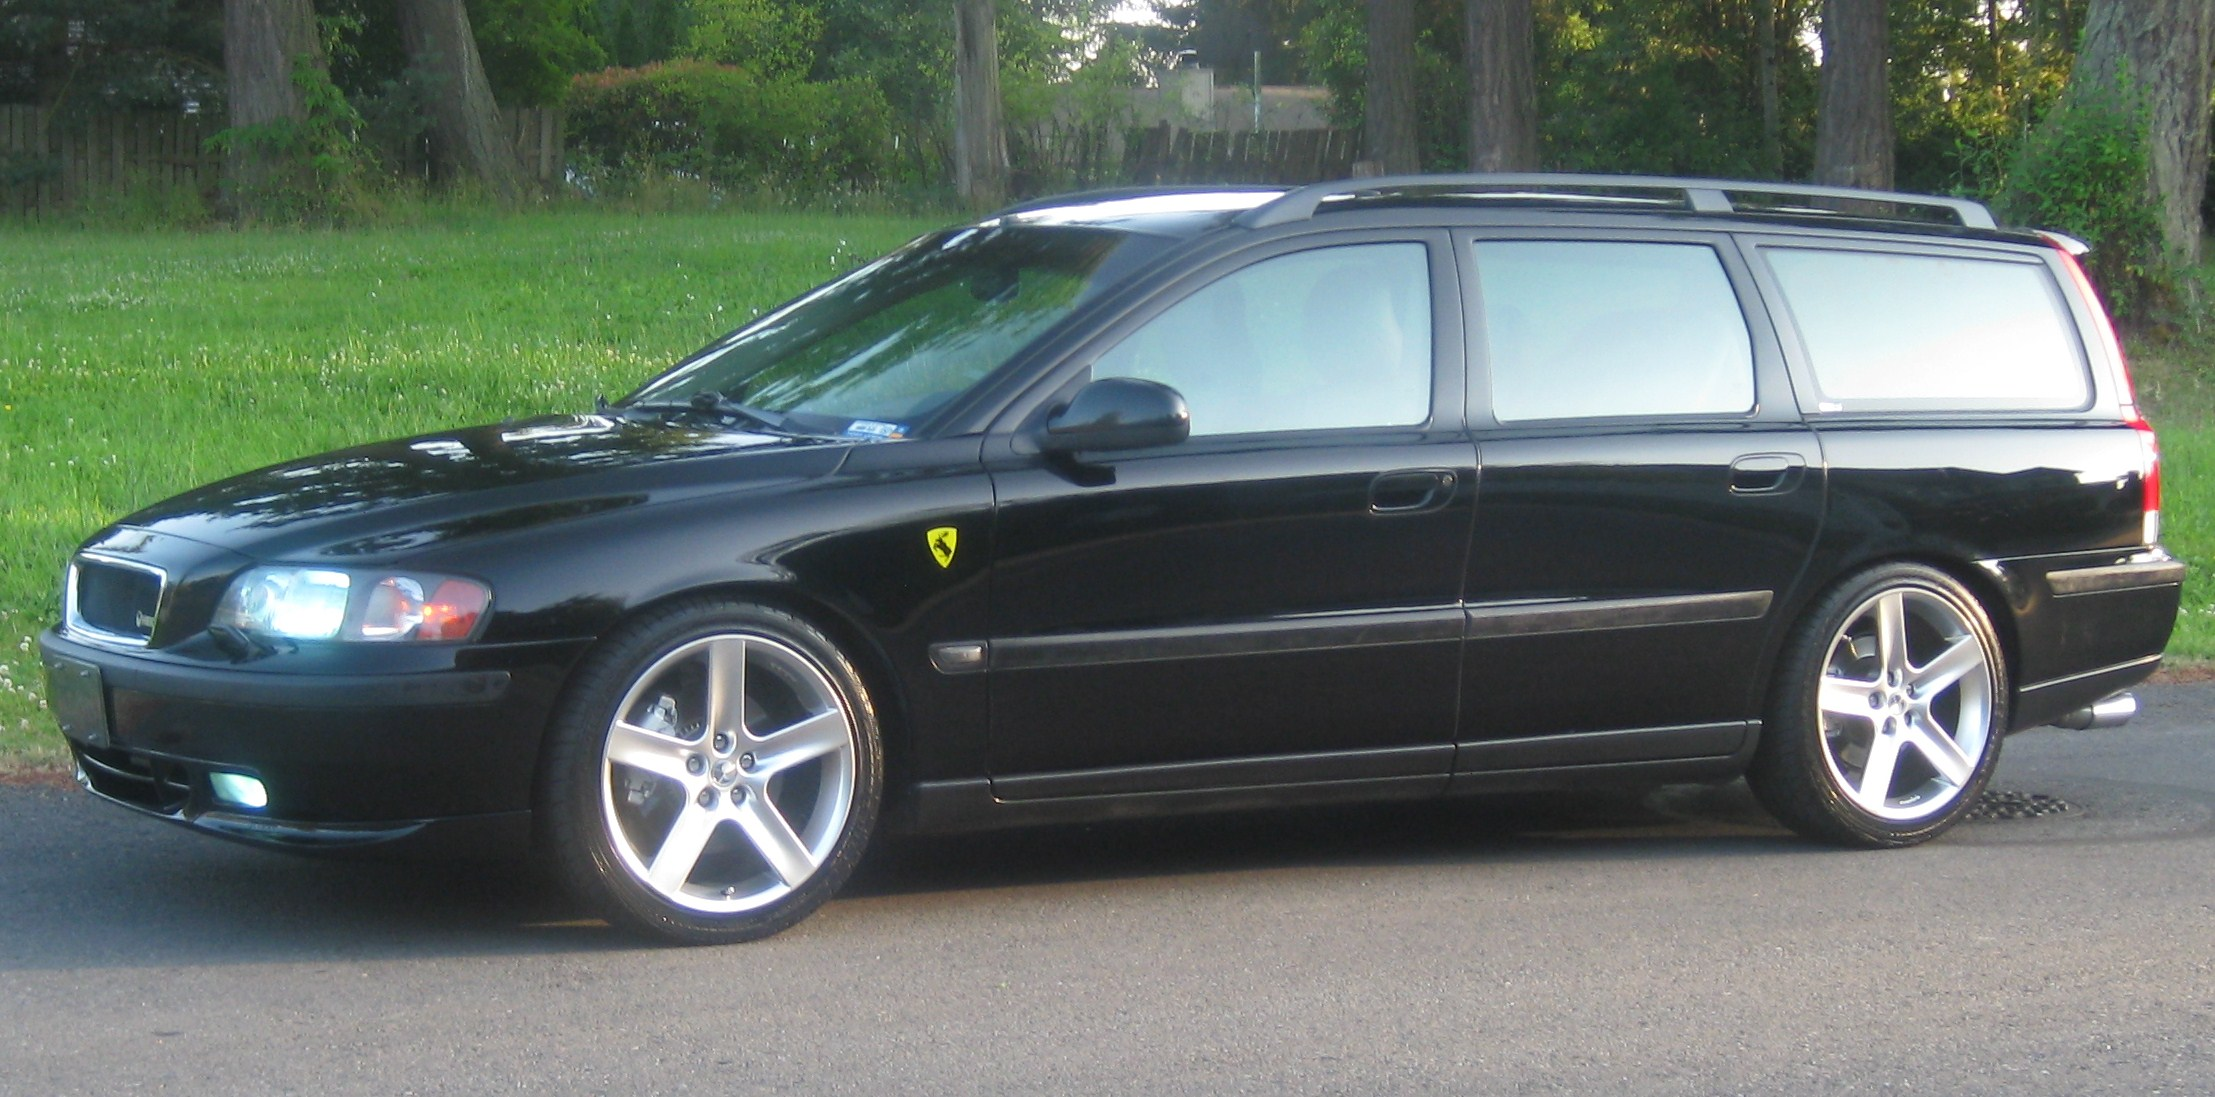 Volvo V70 200 Workshop Manual 1998 To 2007